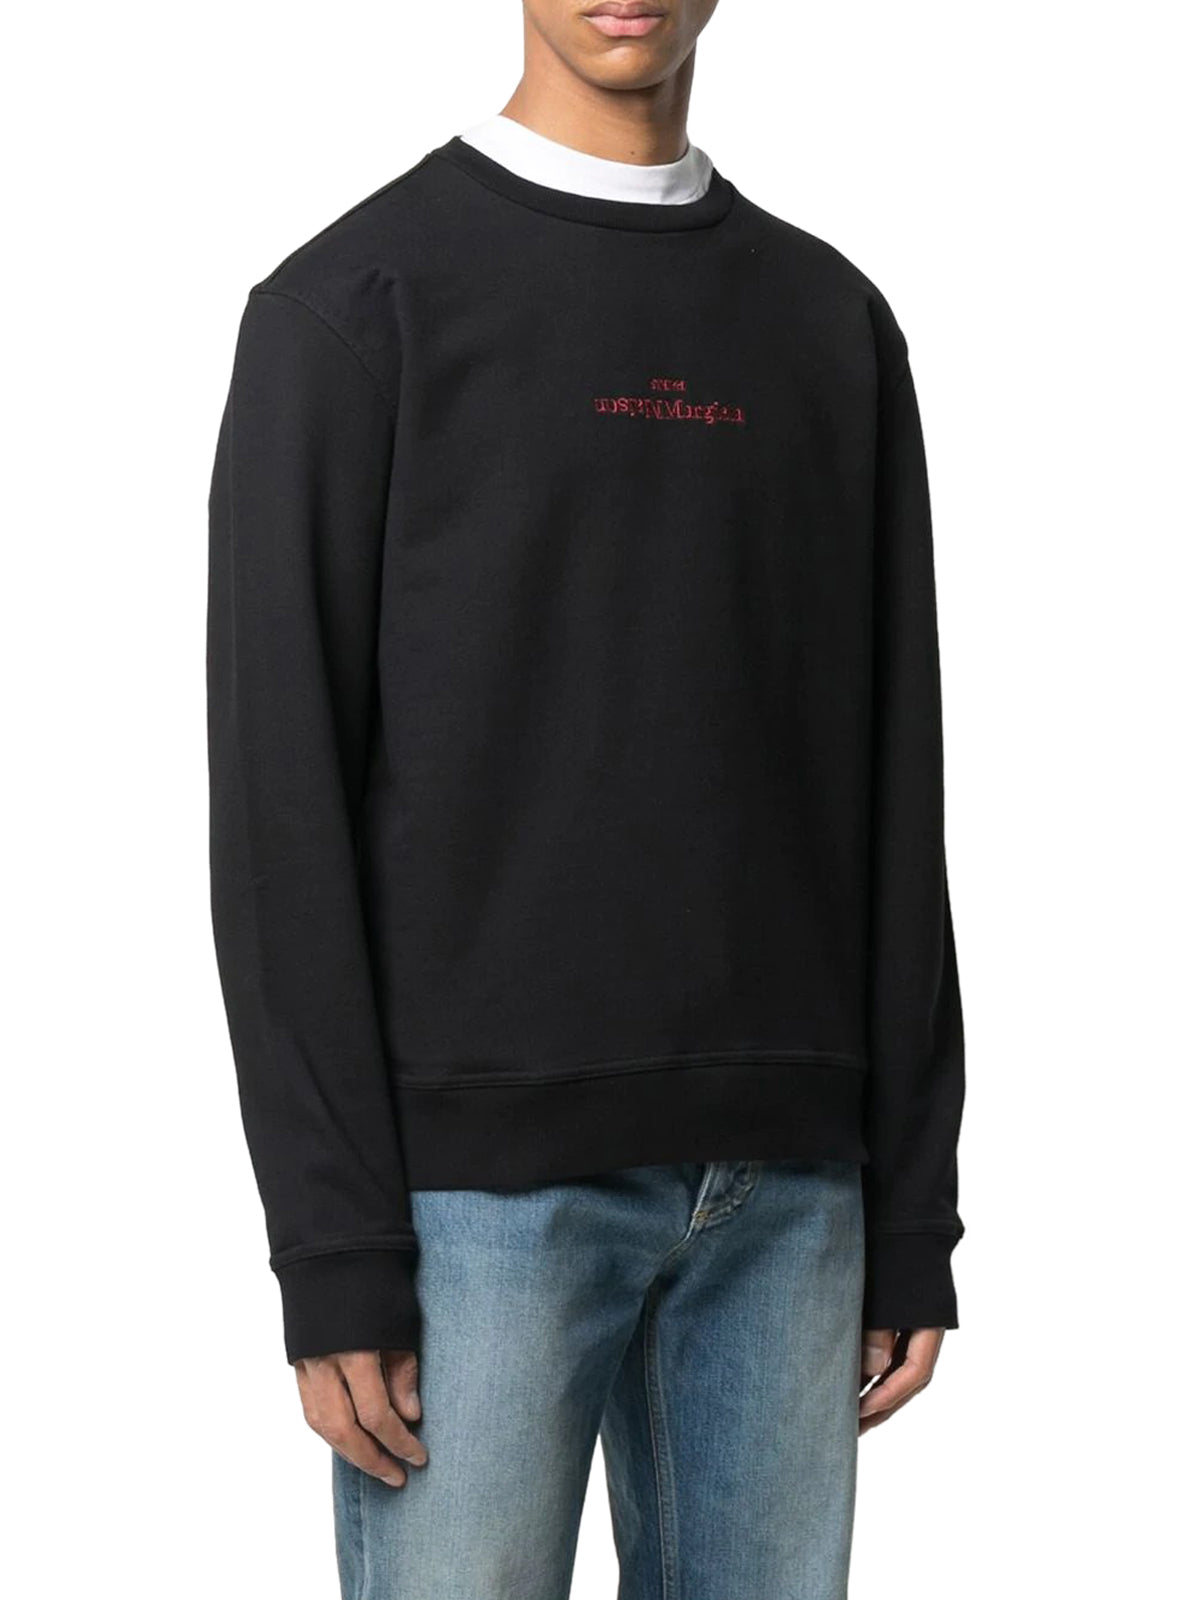 logo-embroidered sweatshirt